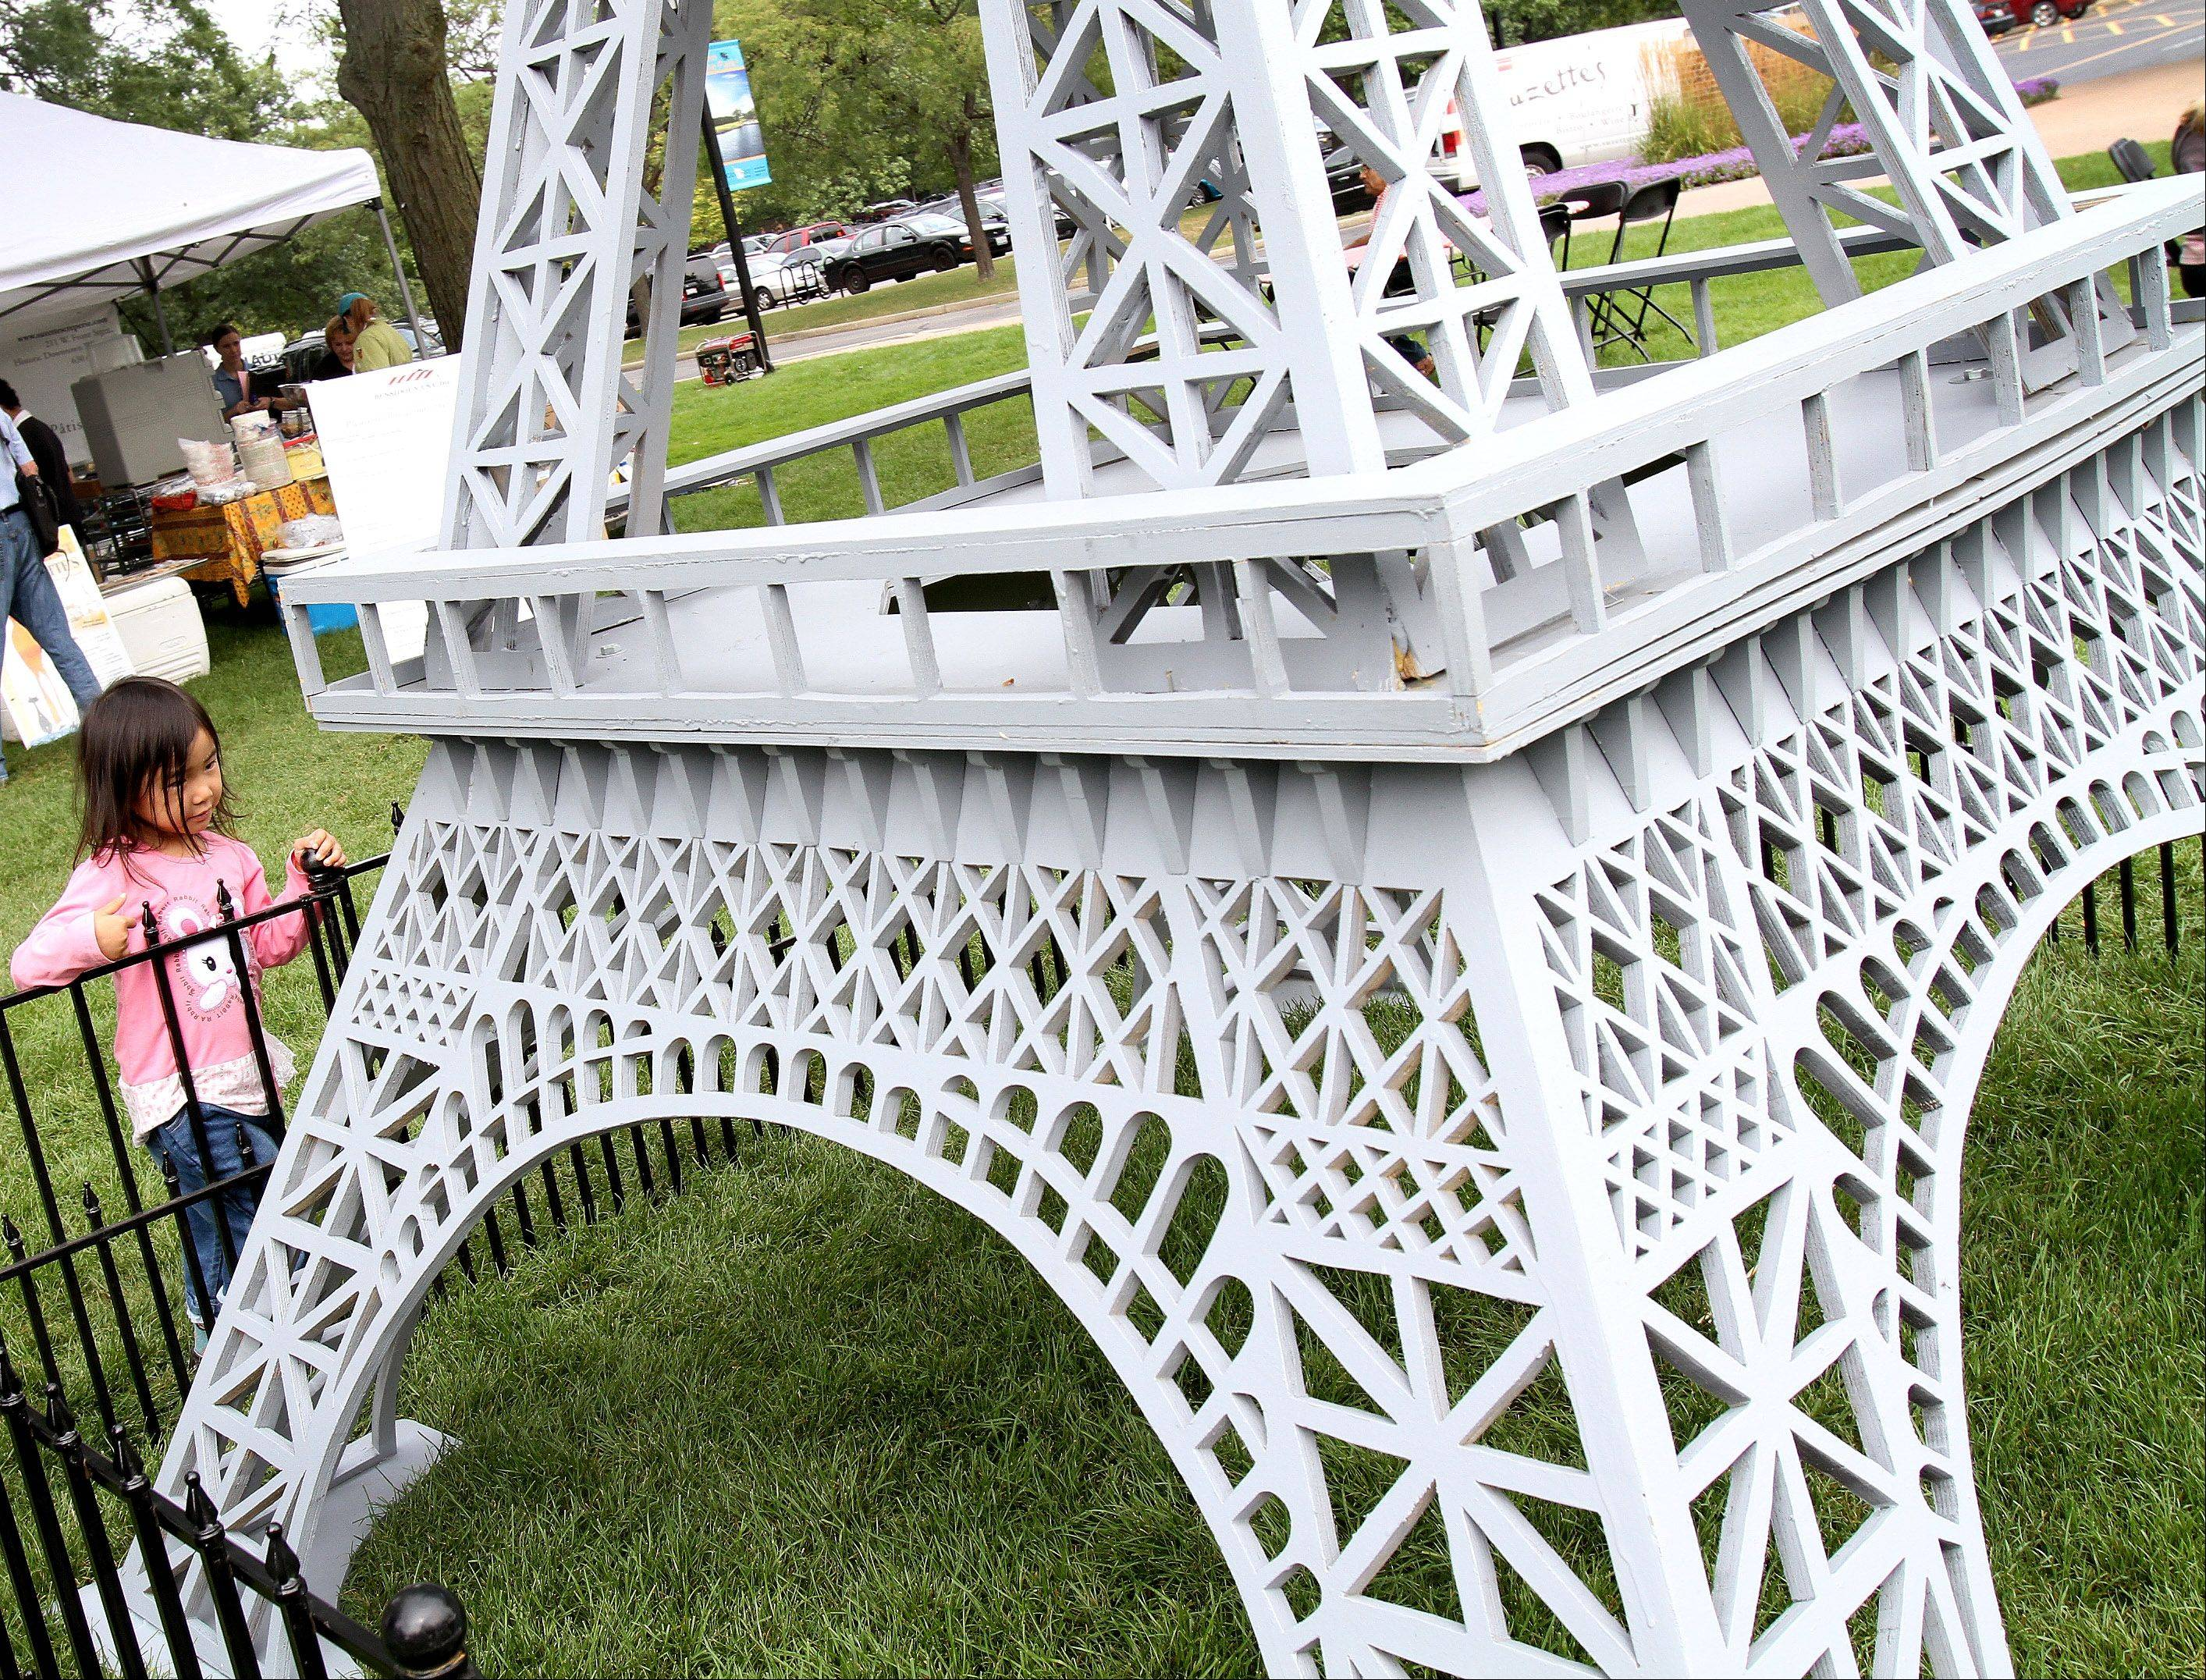 Jasmine Su, 4, of Bartlett, checks out a mini Eiffel Tower on display for French Connection Day at Cantigny Park in Wheaton on Sunday.